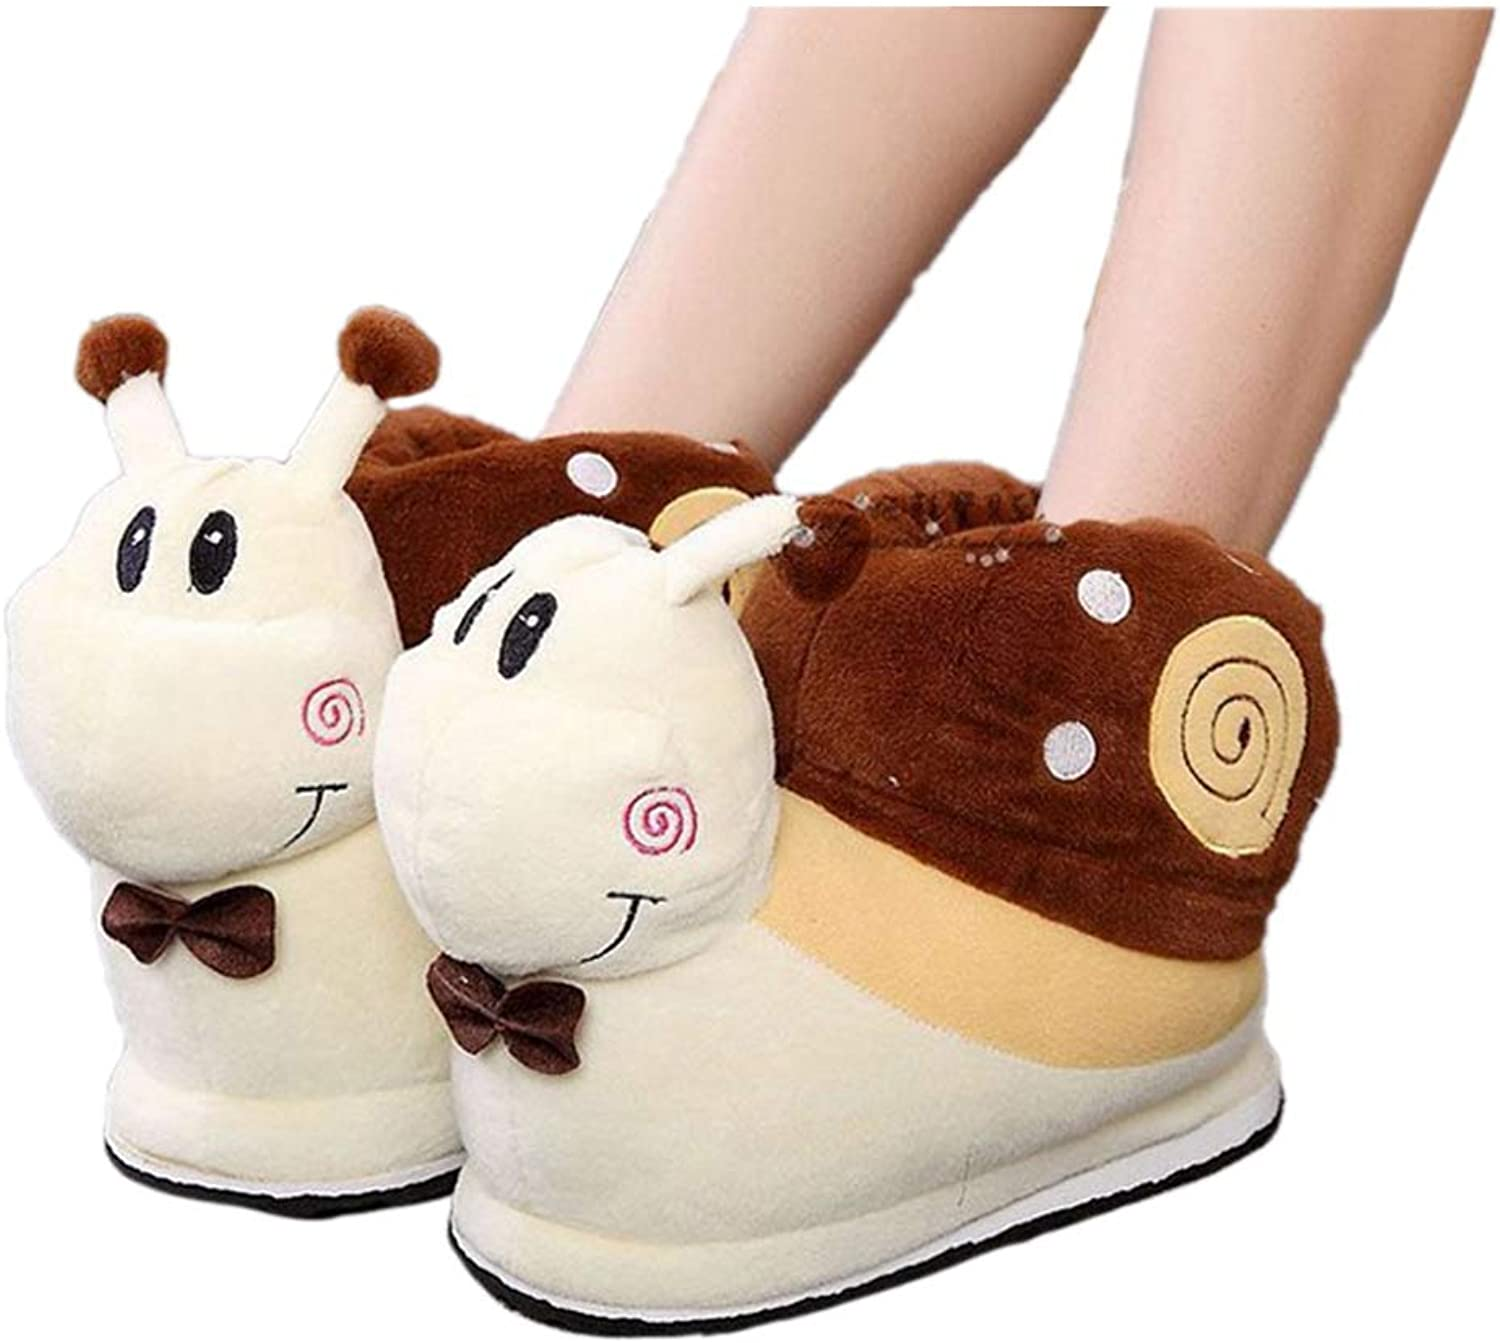 Nafanio Winter Plush Slippers Snail Cartoon Home Cotton Thermal Floor Pregnant Warm Bedroom shoes